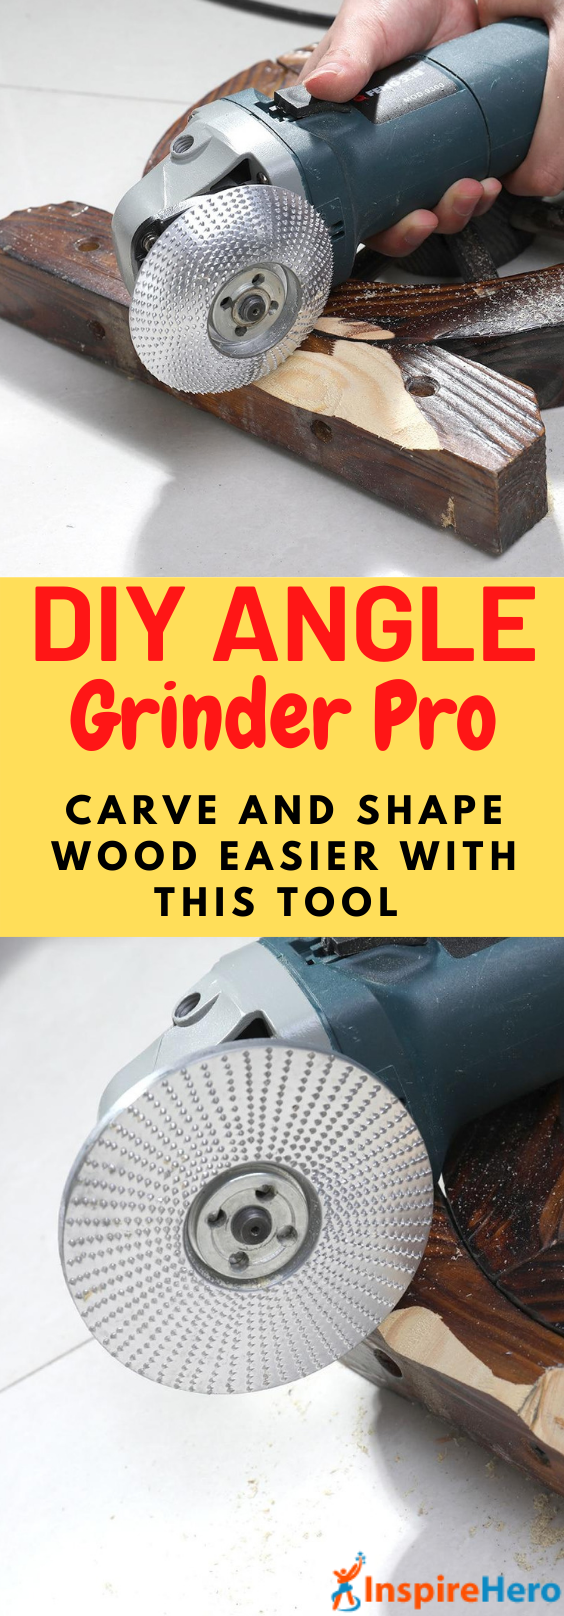 "Want to be able to get your woodworking projects done quicker? Our Angle Grinder Pro provides a precise angle to provide a smooth ""finished"" surface that benefits a lot to minimize sanding later. It also fits with most branded angle grinders. #toolsmusthave #projectswoodworking #toolsdiy #easywoodworkingprojects #powertools #toolsforwoodworking"